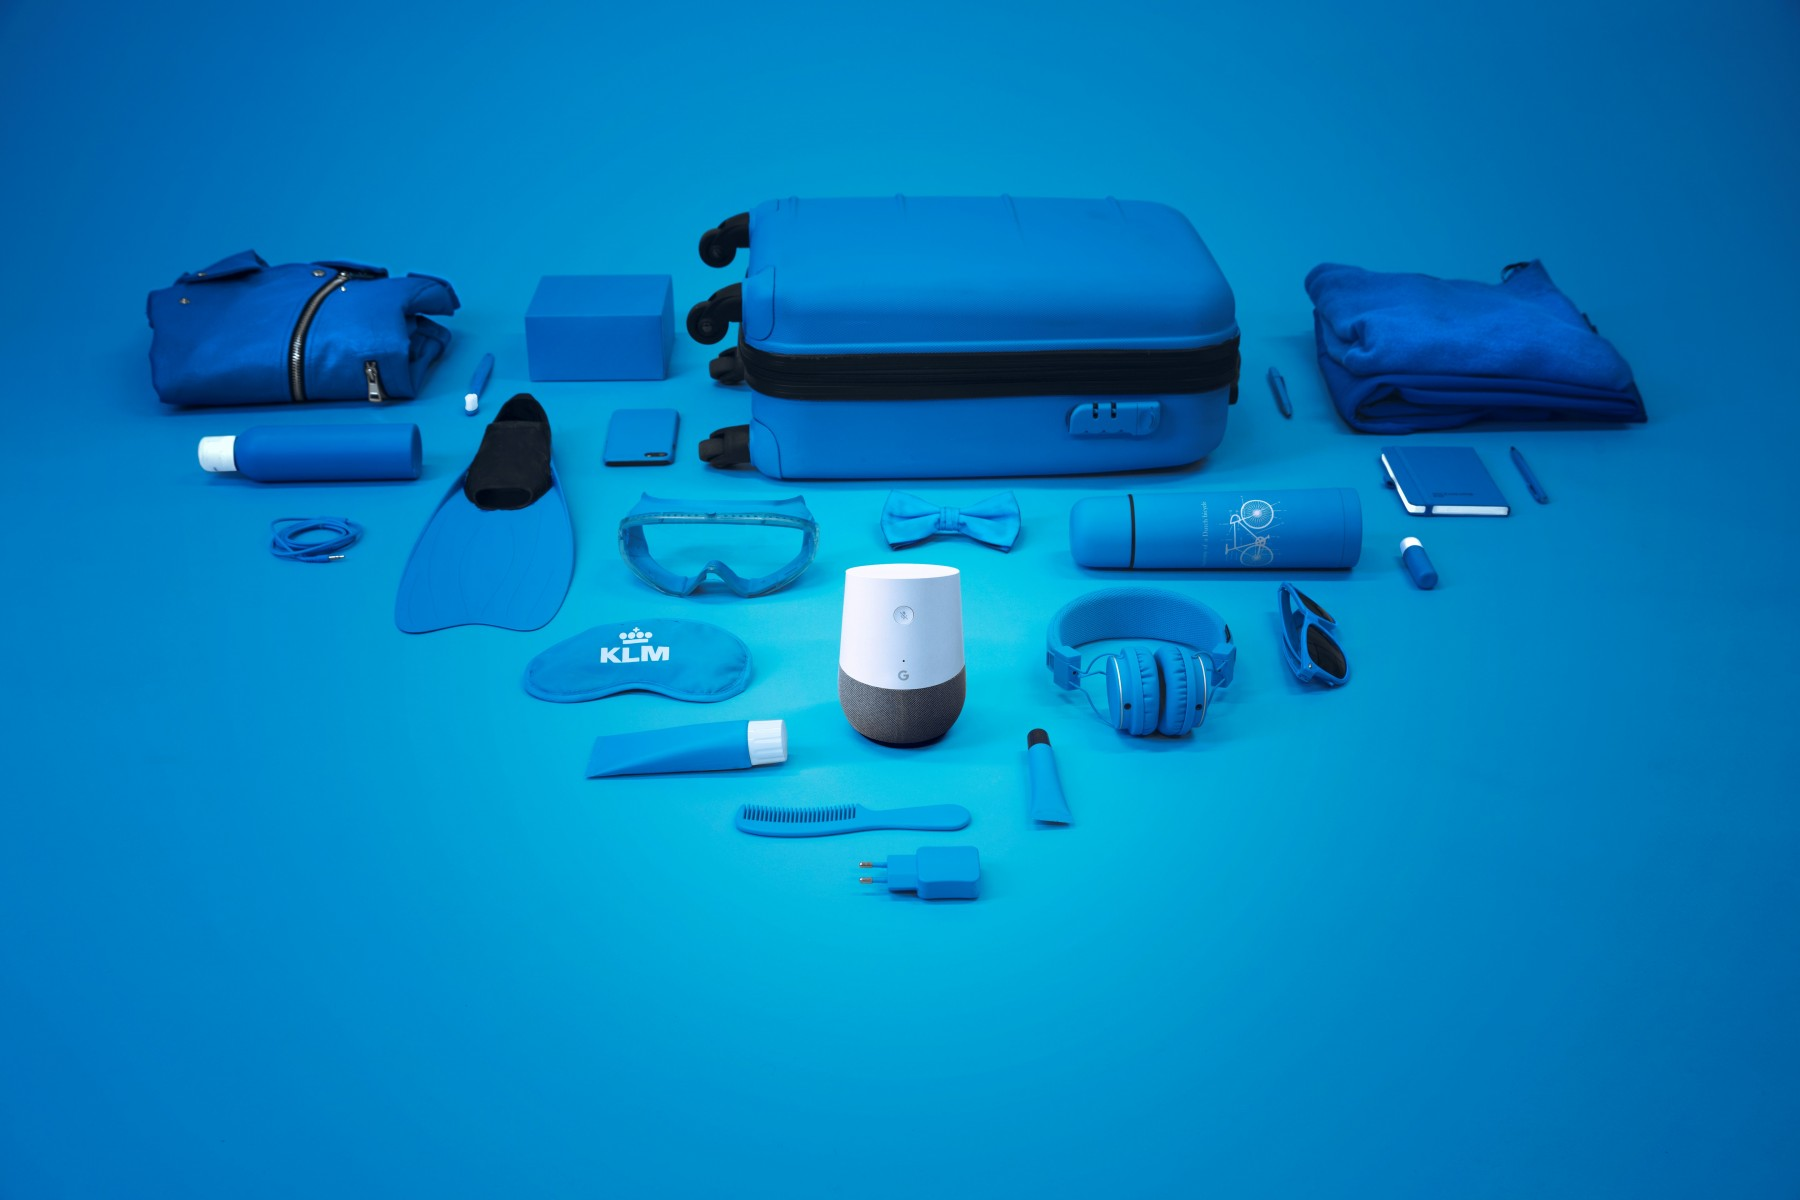 KLM helps you packing with voice-driven assistant on Google Home